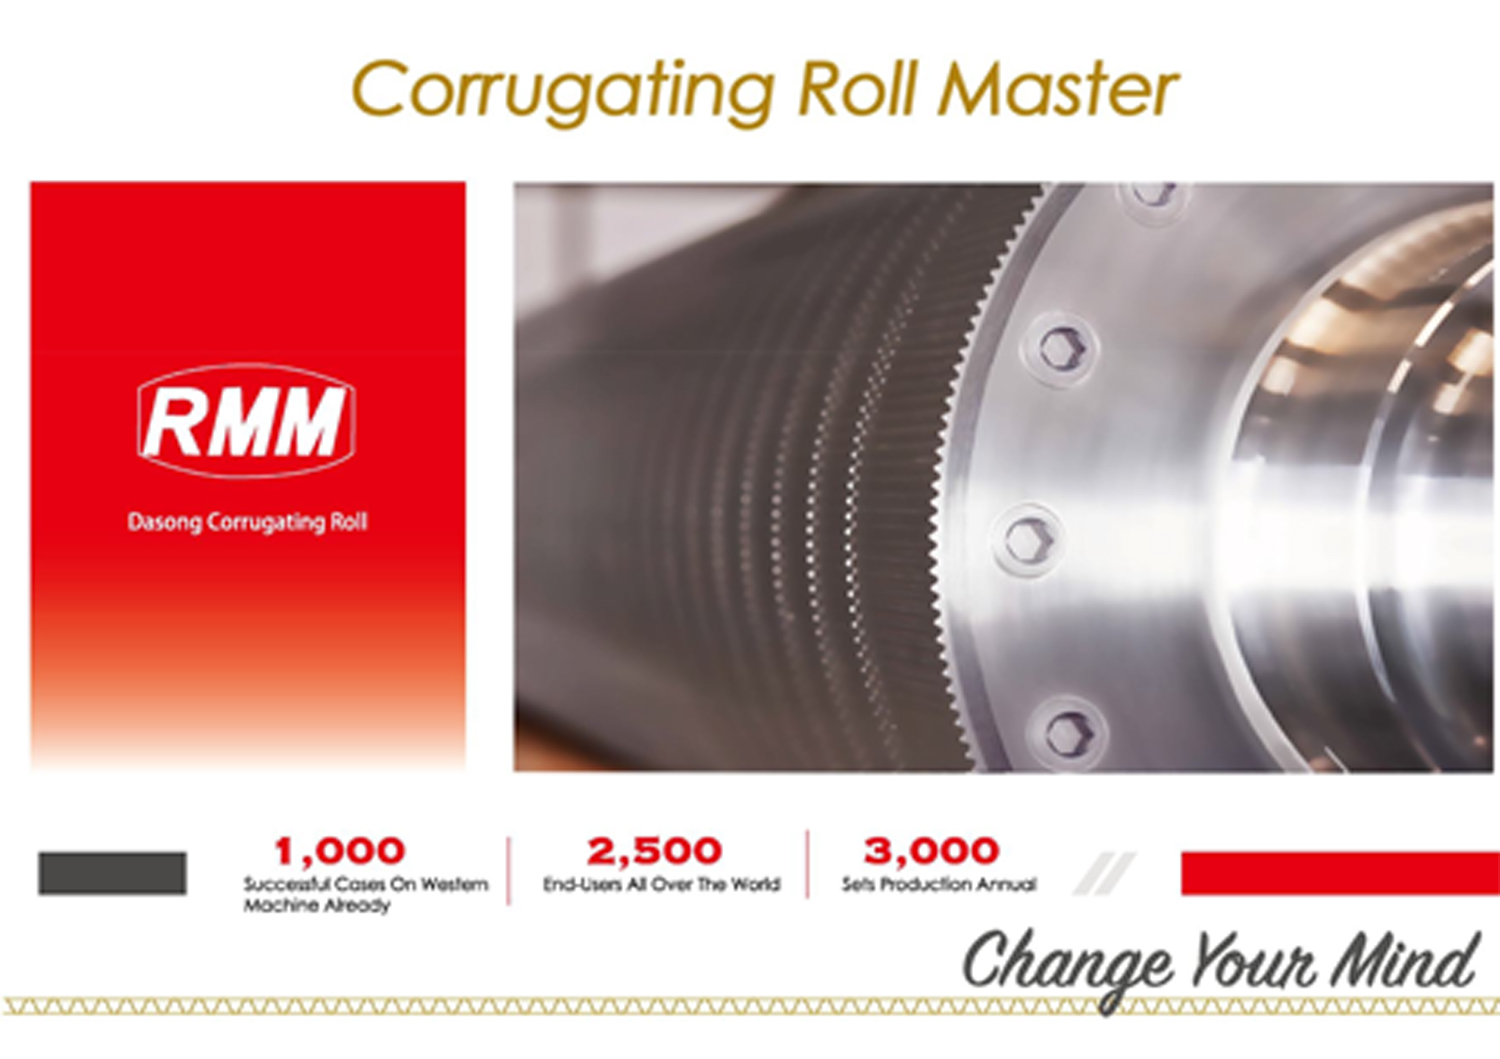 Read more about RMM's developments in the Corrugating Roll Master Brochure